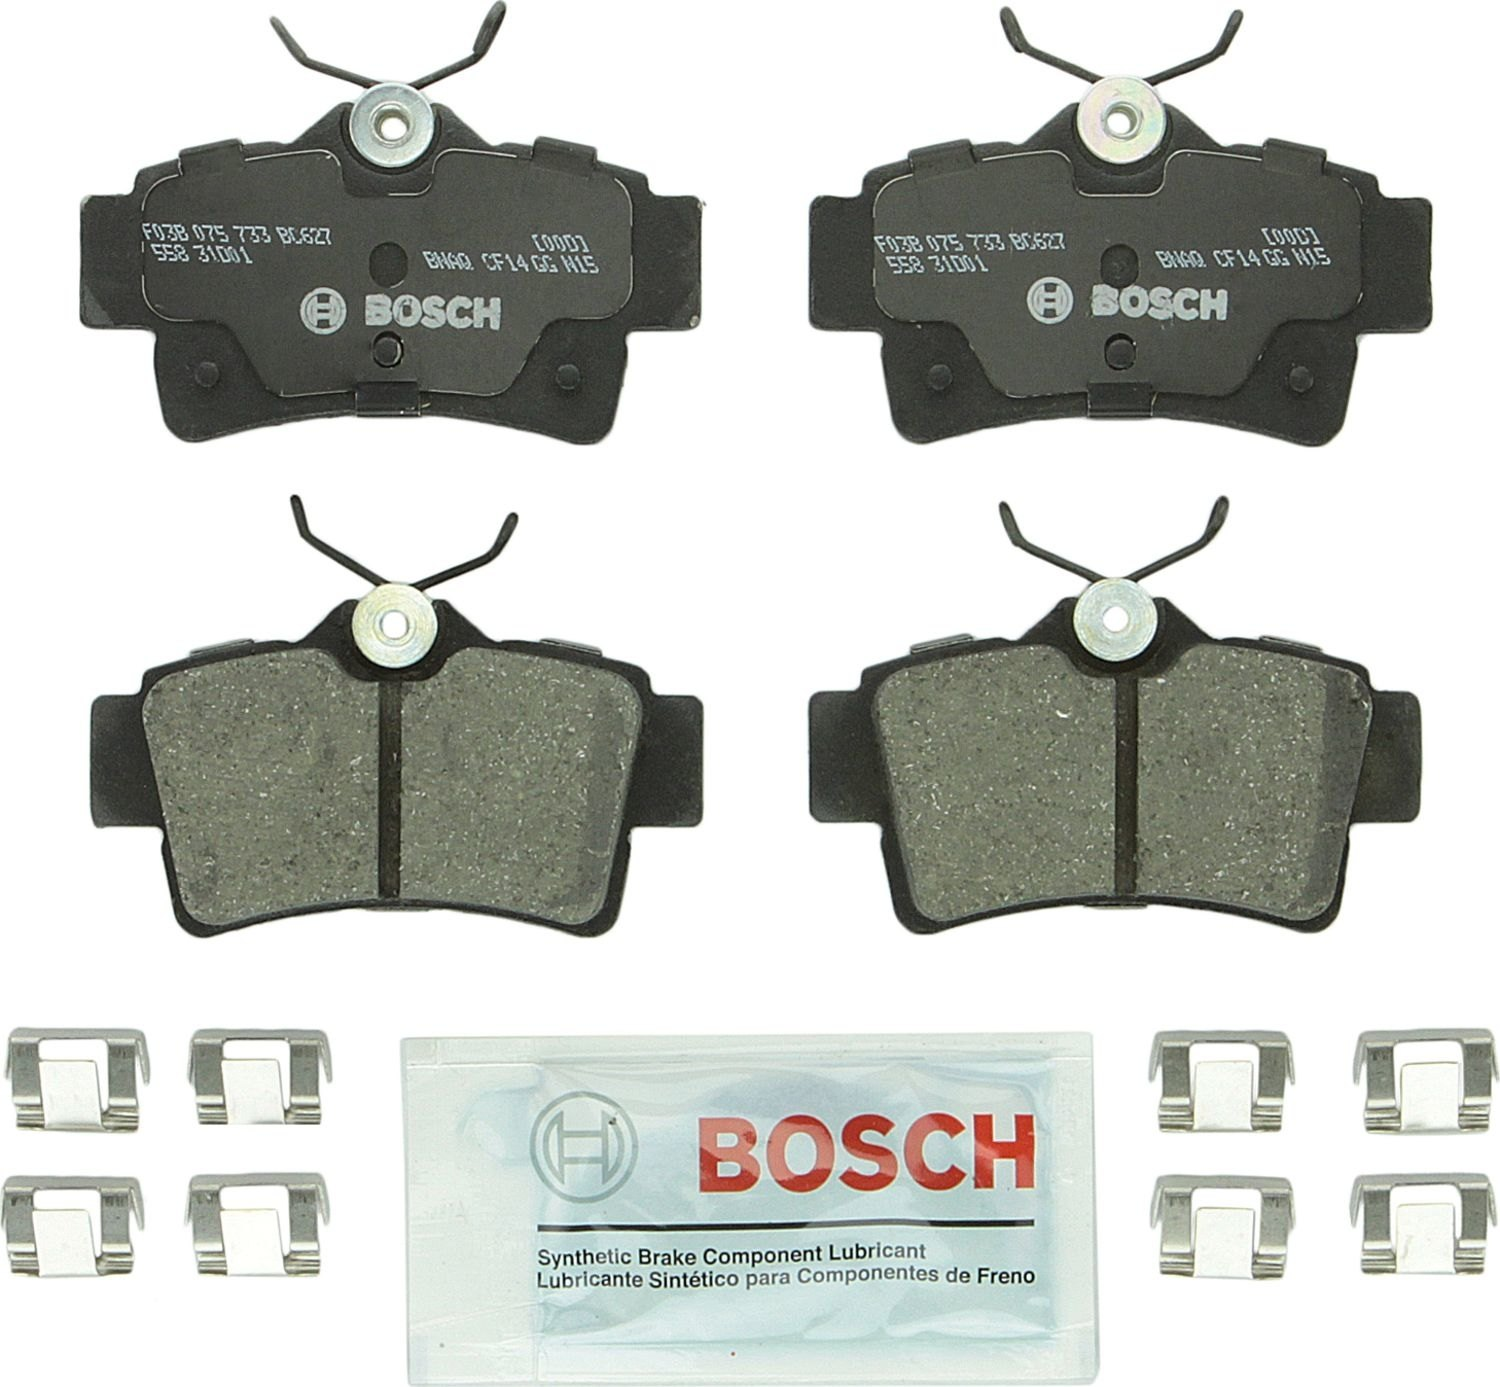 BOSCH BRAKE - Bosch QuietCast Ceramic Pads w/ Hardware (Rear) - BQC BC627